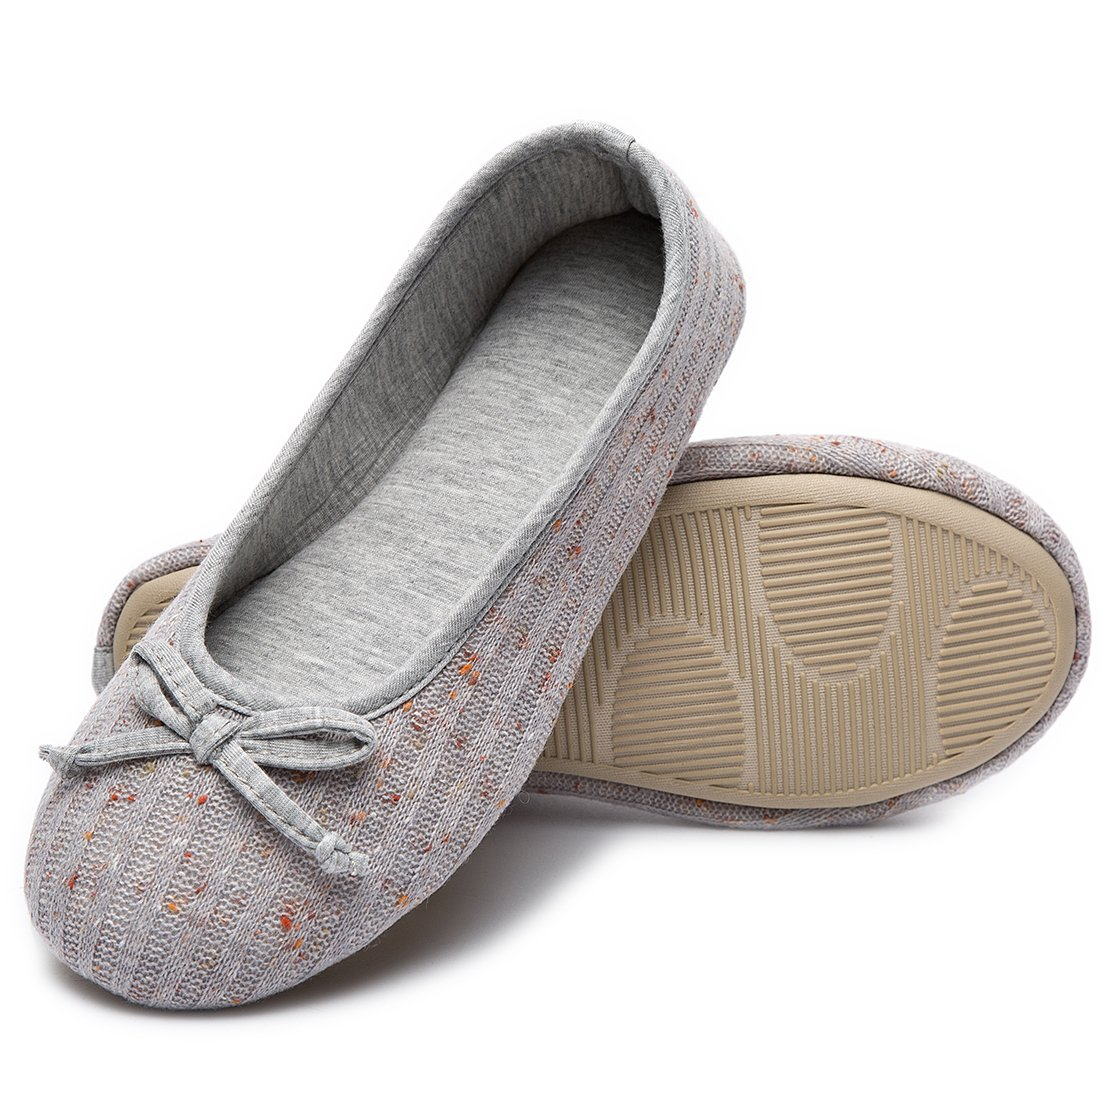 HomeTop Women/'s Elegant Cashmere Knitted Memory Foam Indoor Ballerina House Slippers//Shoes